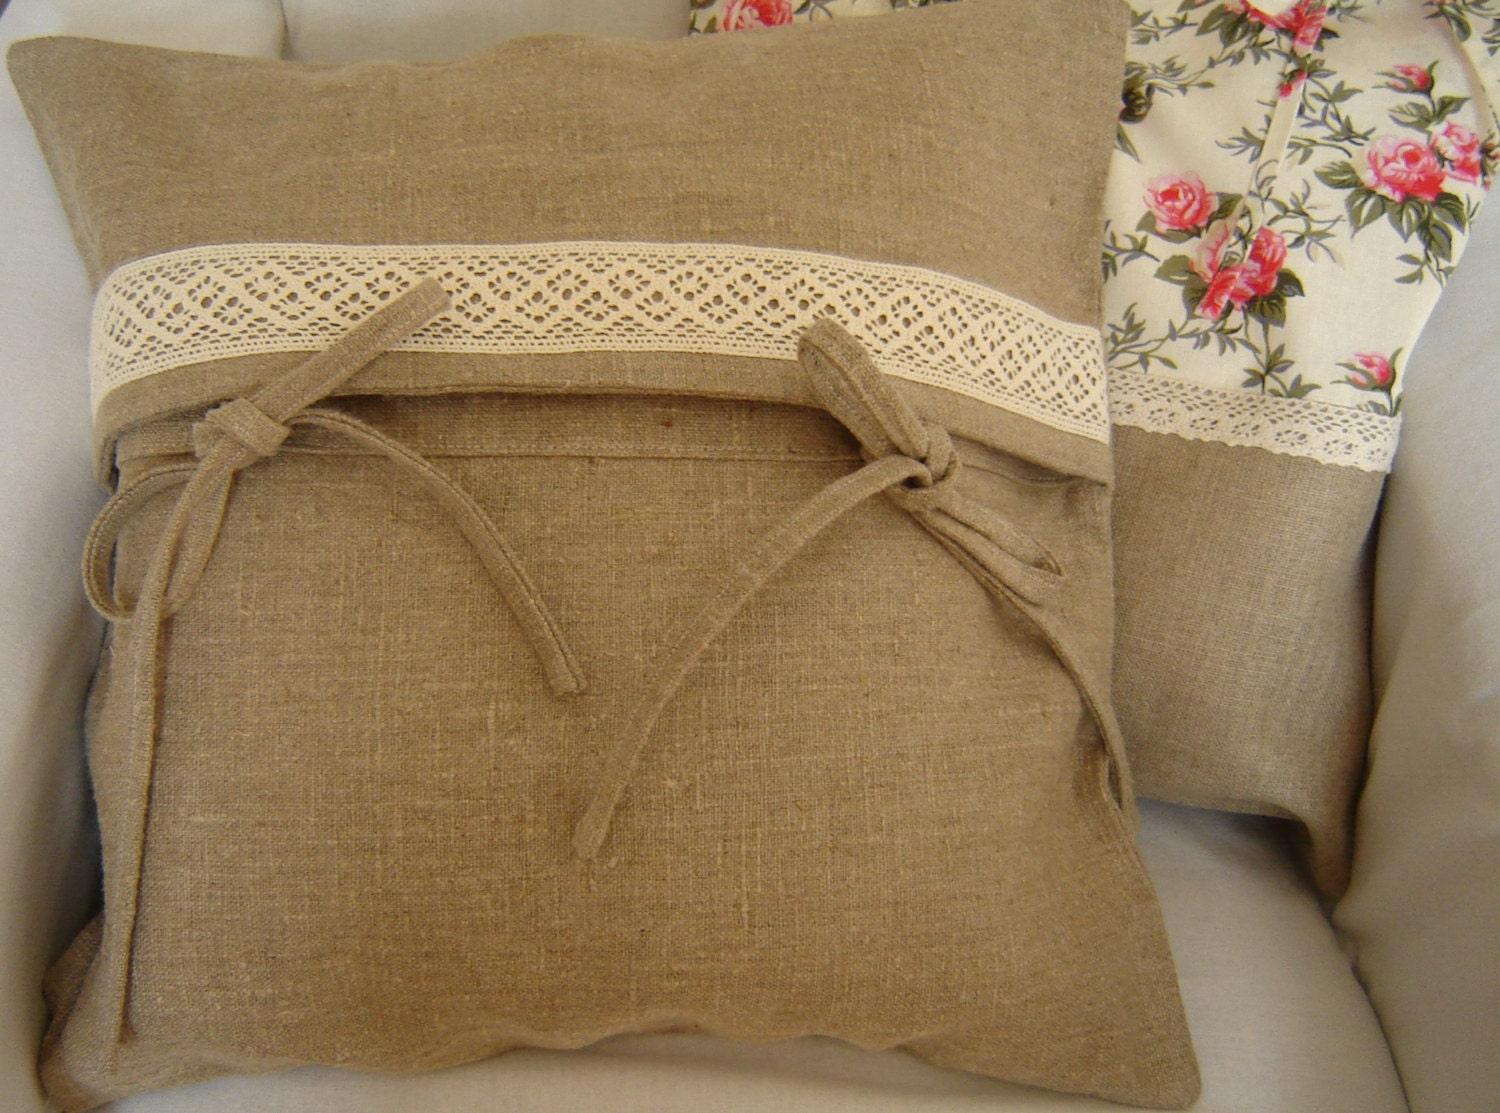 Natural linen pillow cover with cotton lace. Decorative